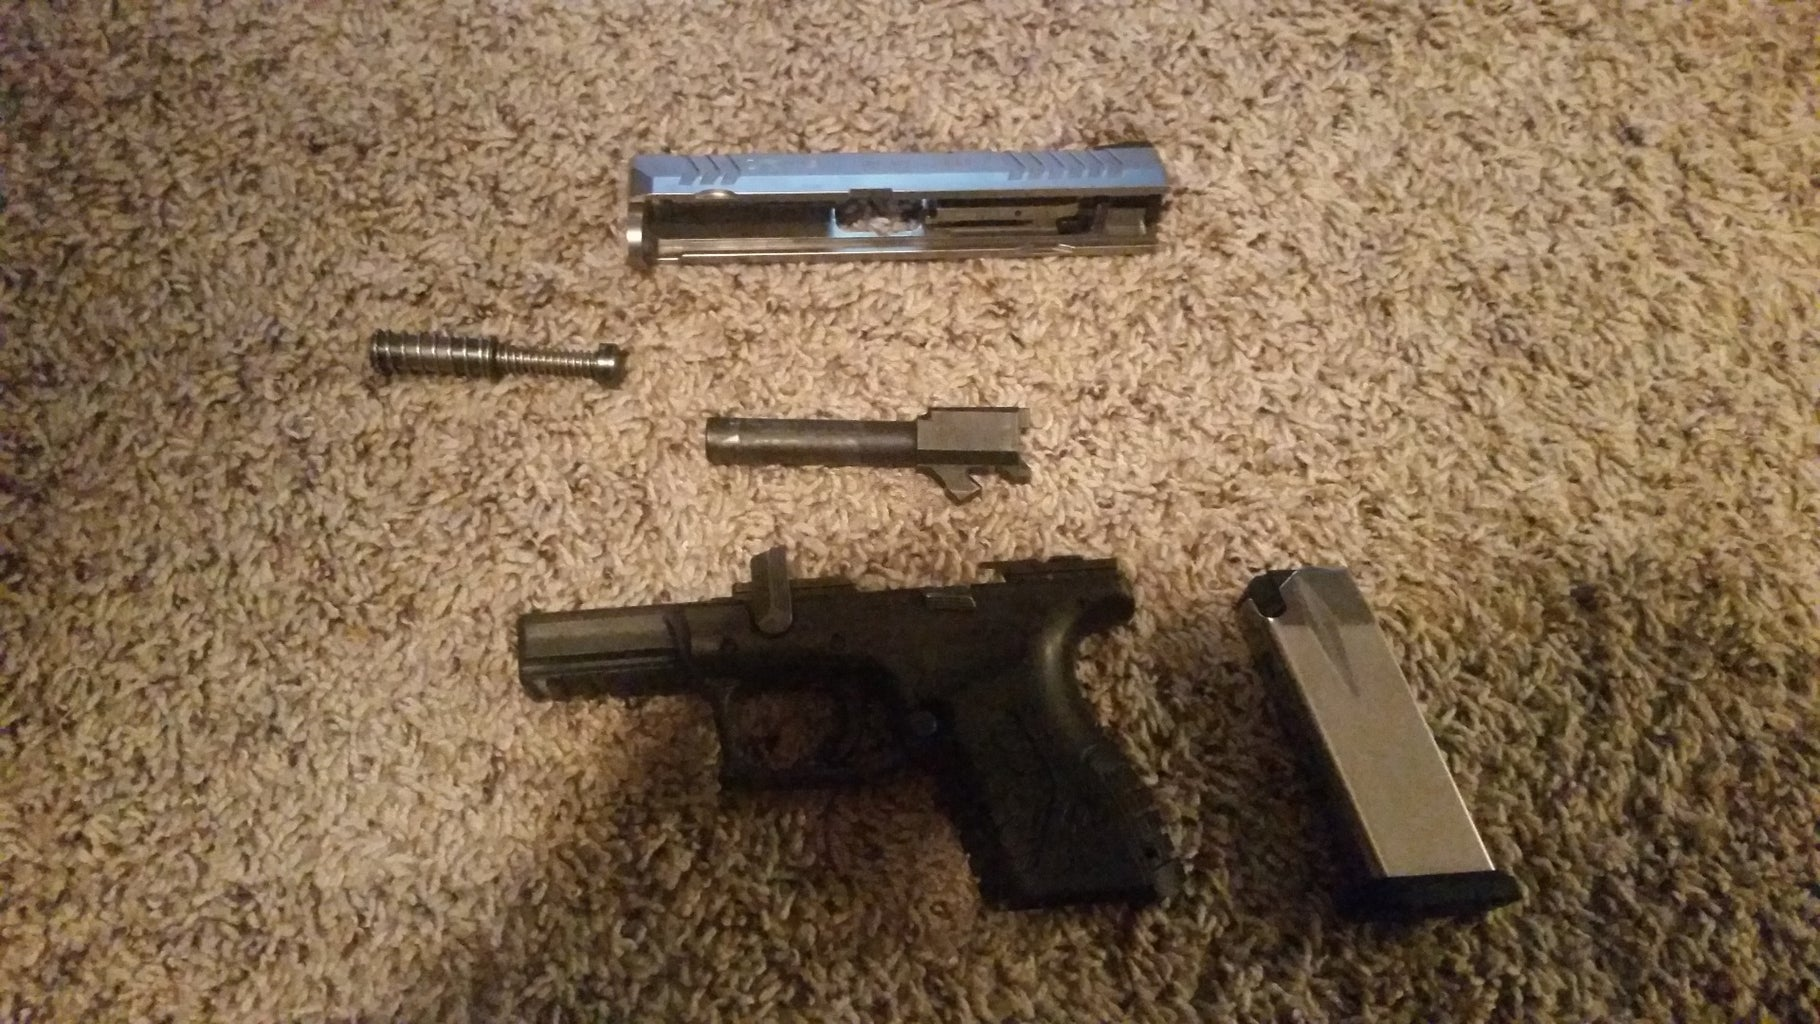 Re-assembly of a Springfield XDM